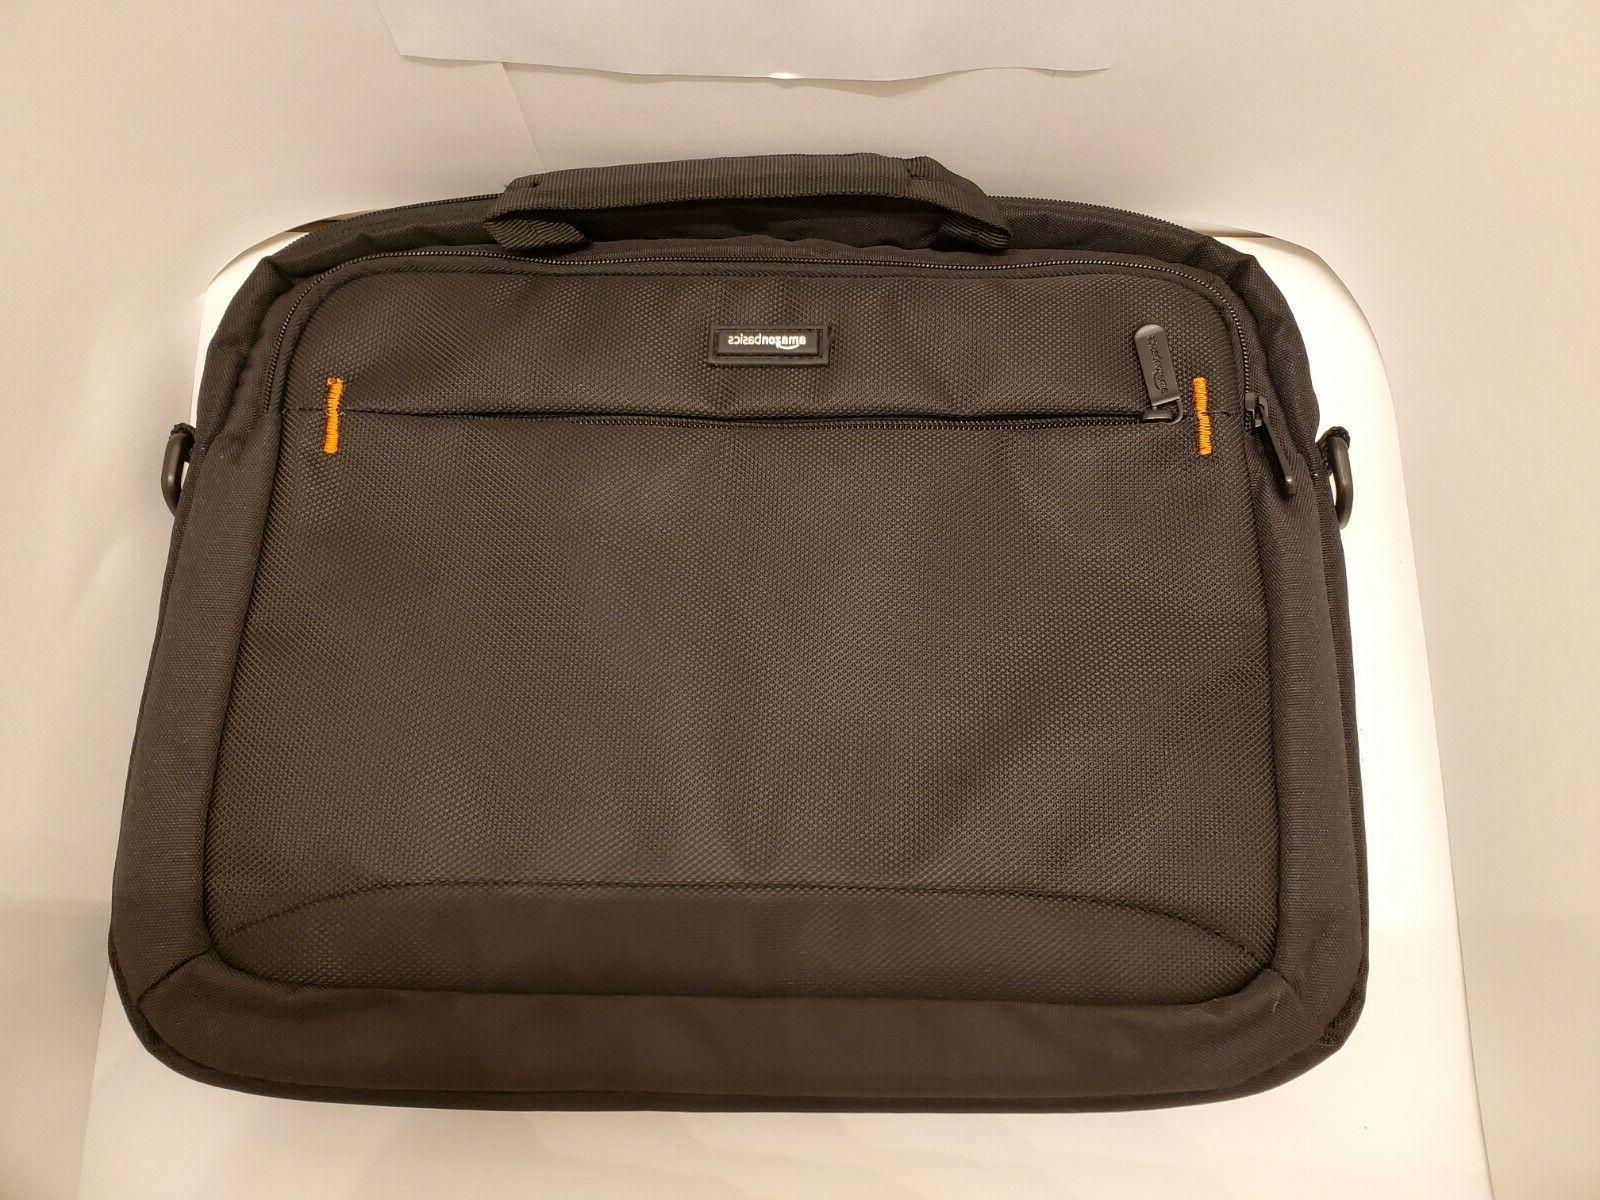 AmazonBasics 14-Inch and Carrying Case